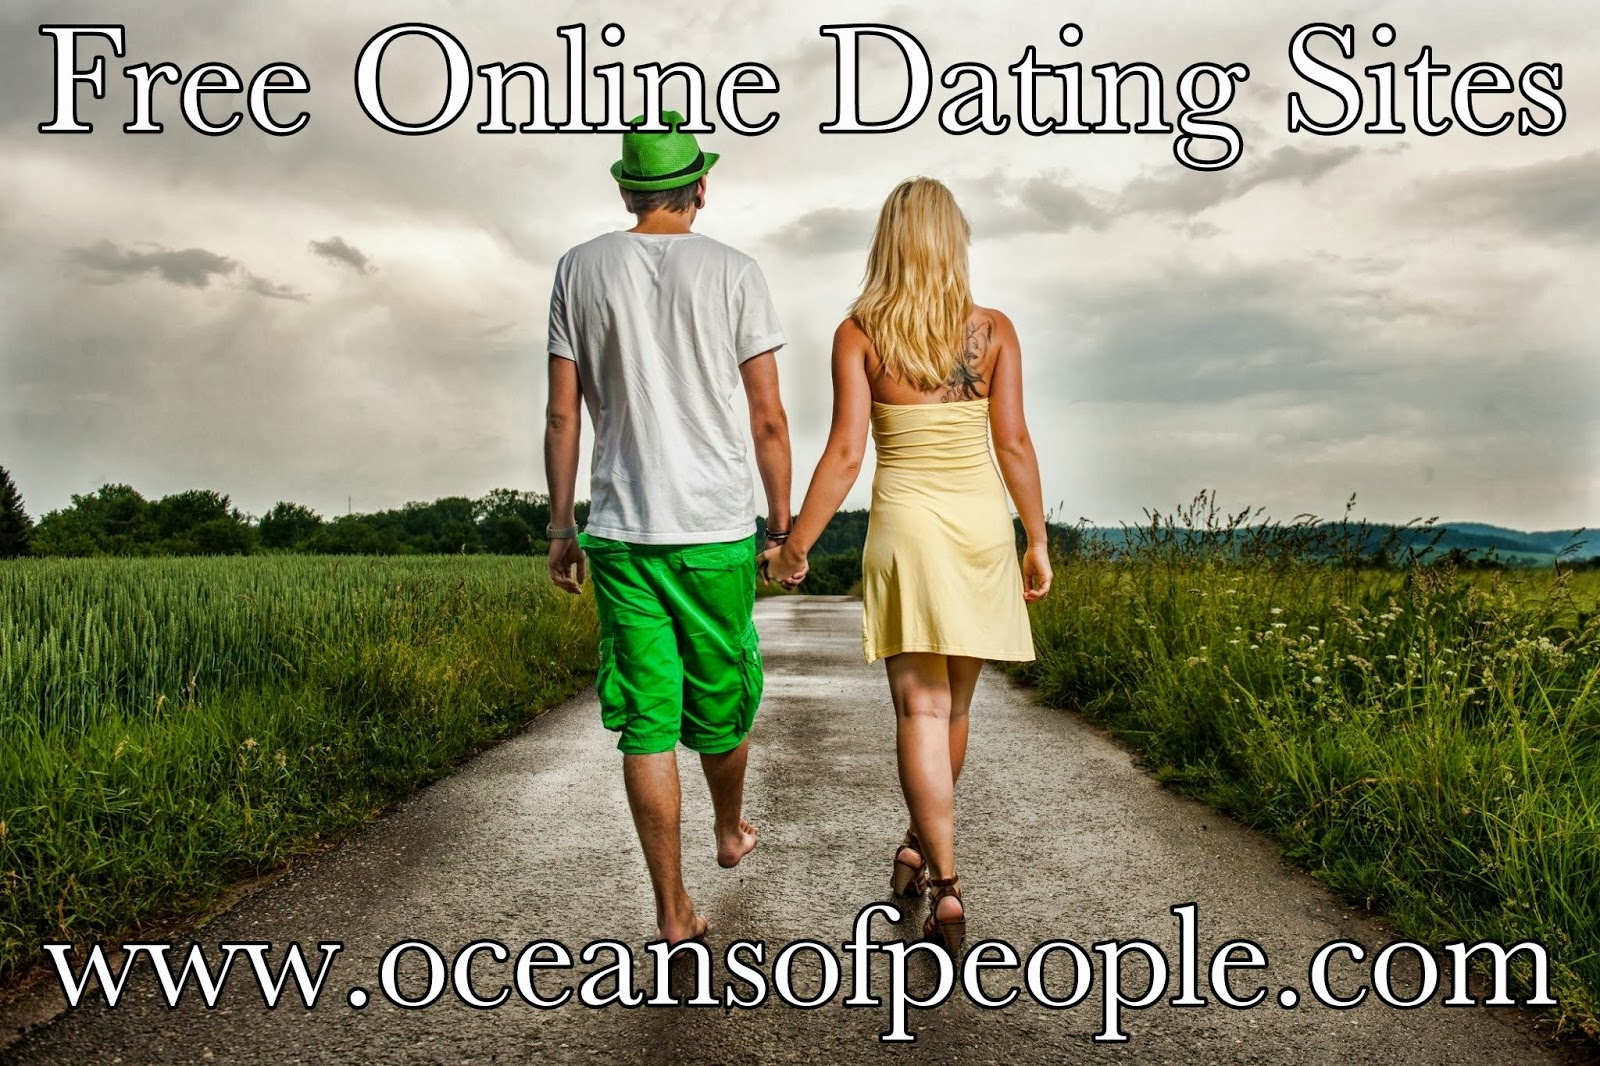 100% free online dating in munnsville 100% free online dating site for singles of all races and interests to find available singles to flirt, date, fall in love, and create relationships.